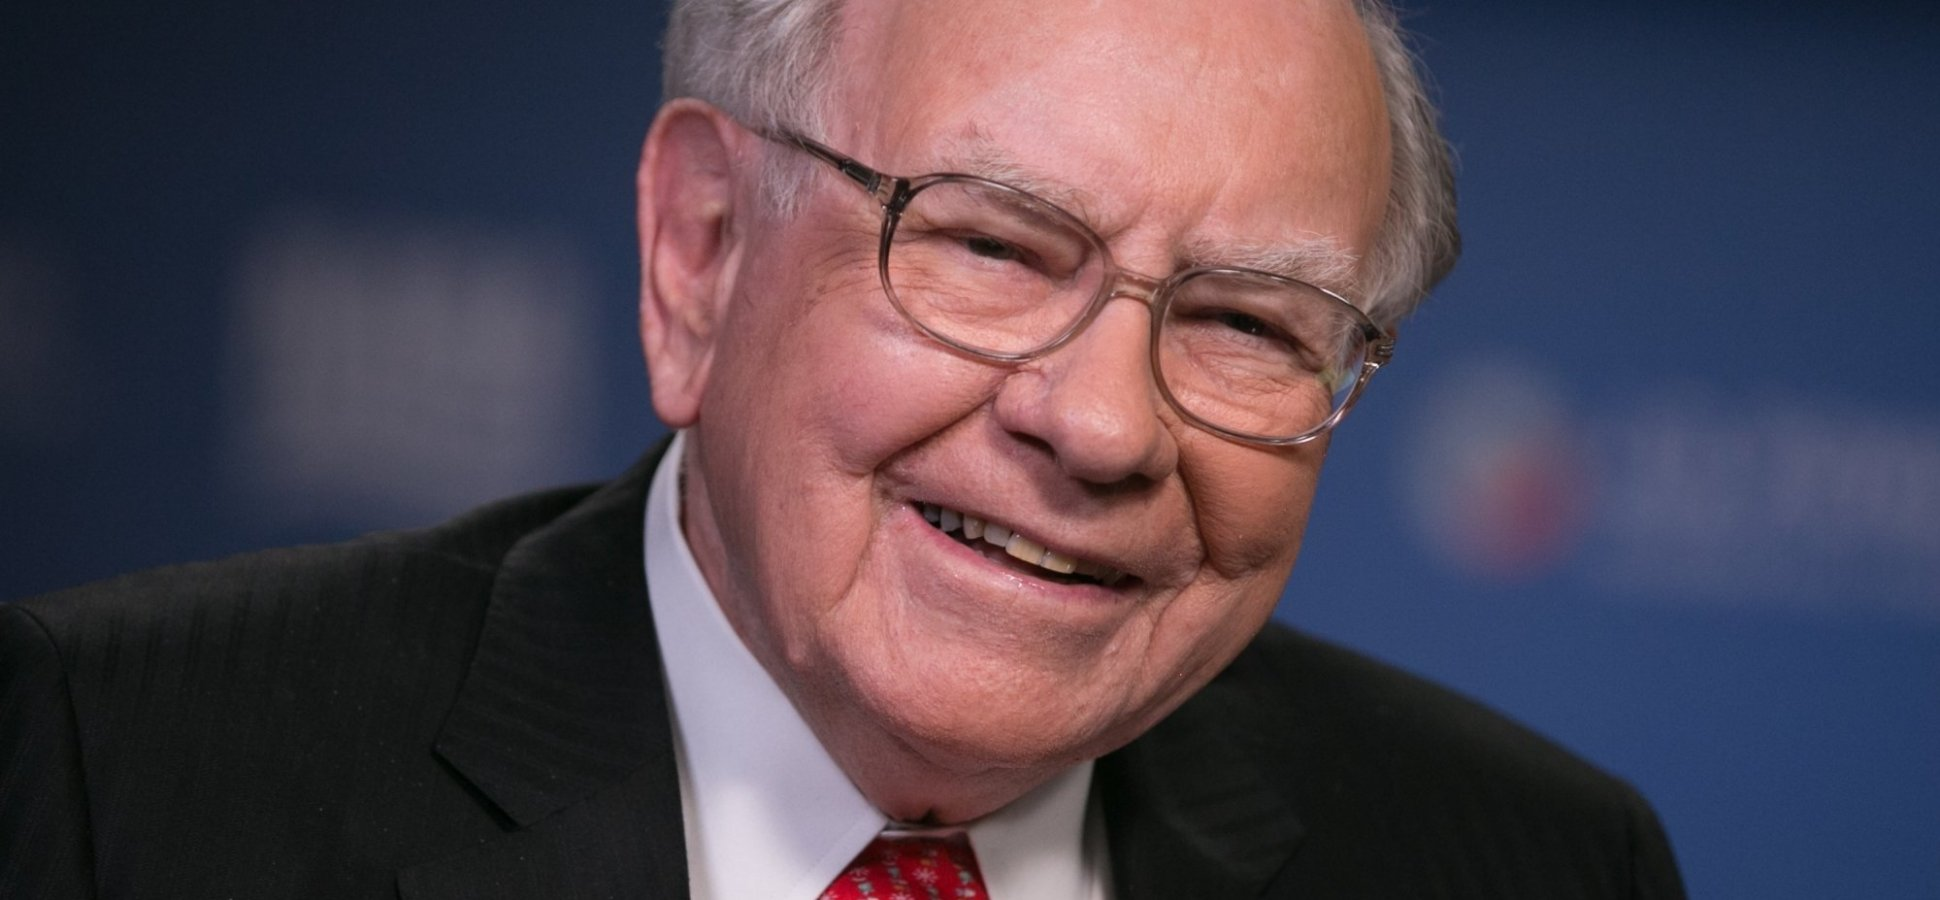 Warren Buffett Says This 1 Simple Habit Separates Successful People From Everyone Else